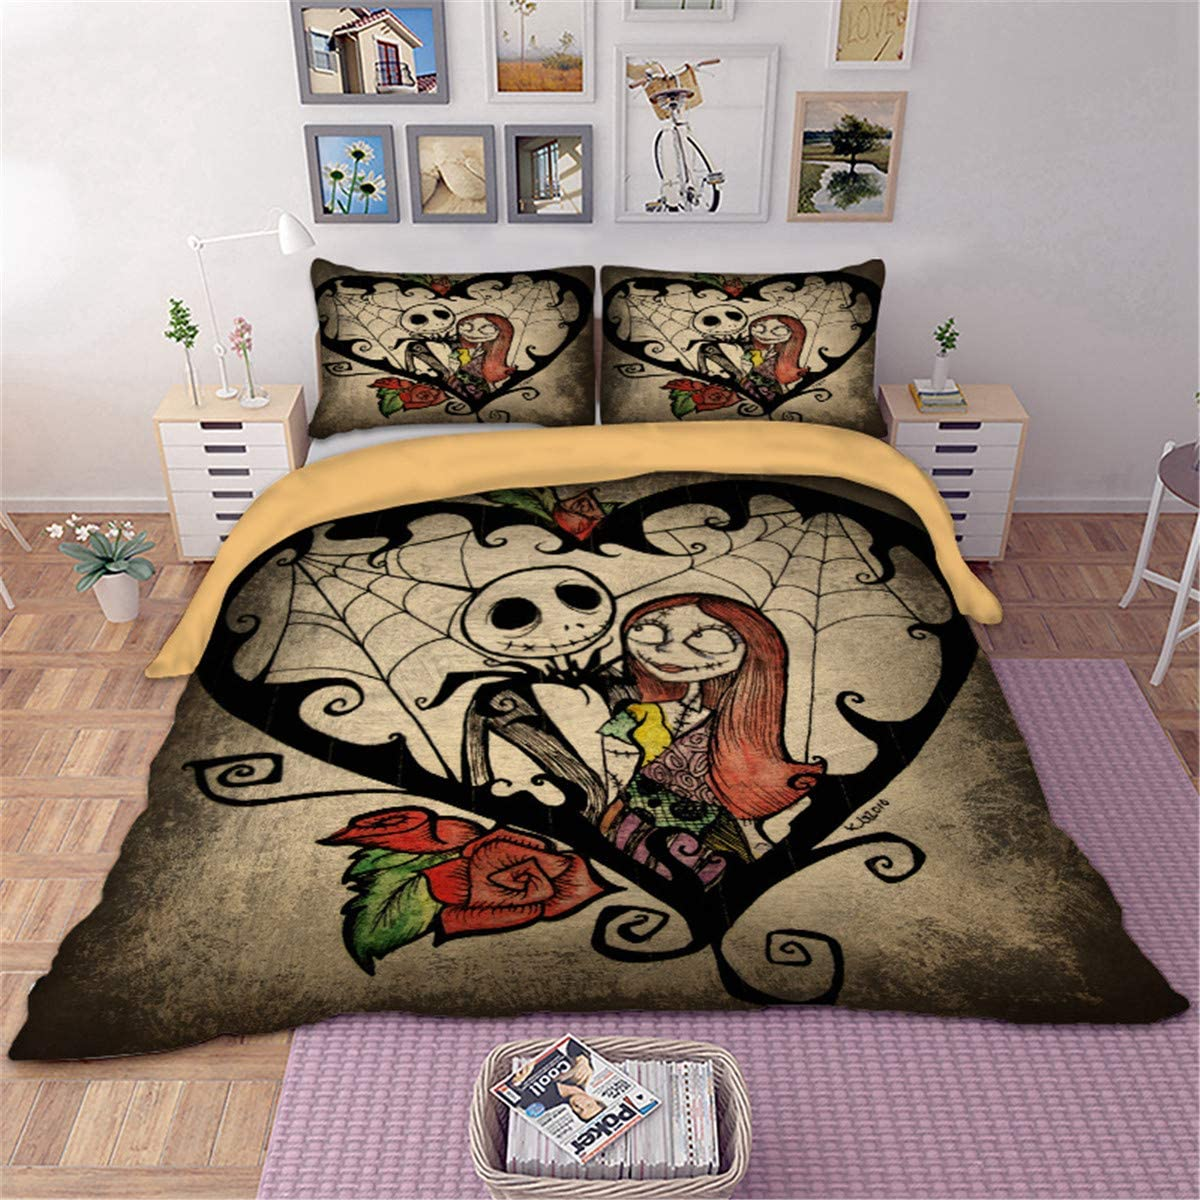 """Duvet Cover Set 3D Printed Skull Nightmare Before Christmas Bedding Quilt Cover with Zipper Closure and 2 Pillowcases for Kids Teens Adults King Size (90""""x 103"""")"""